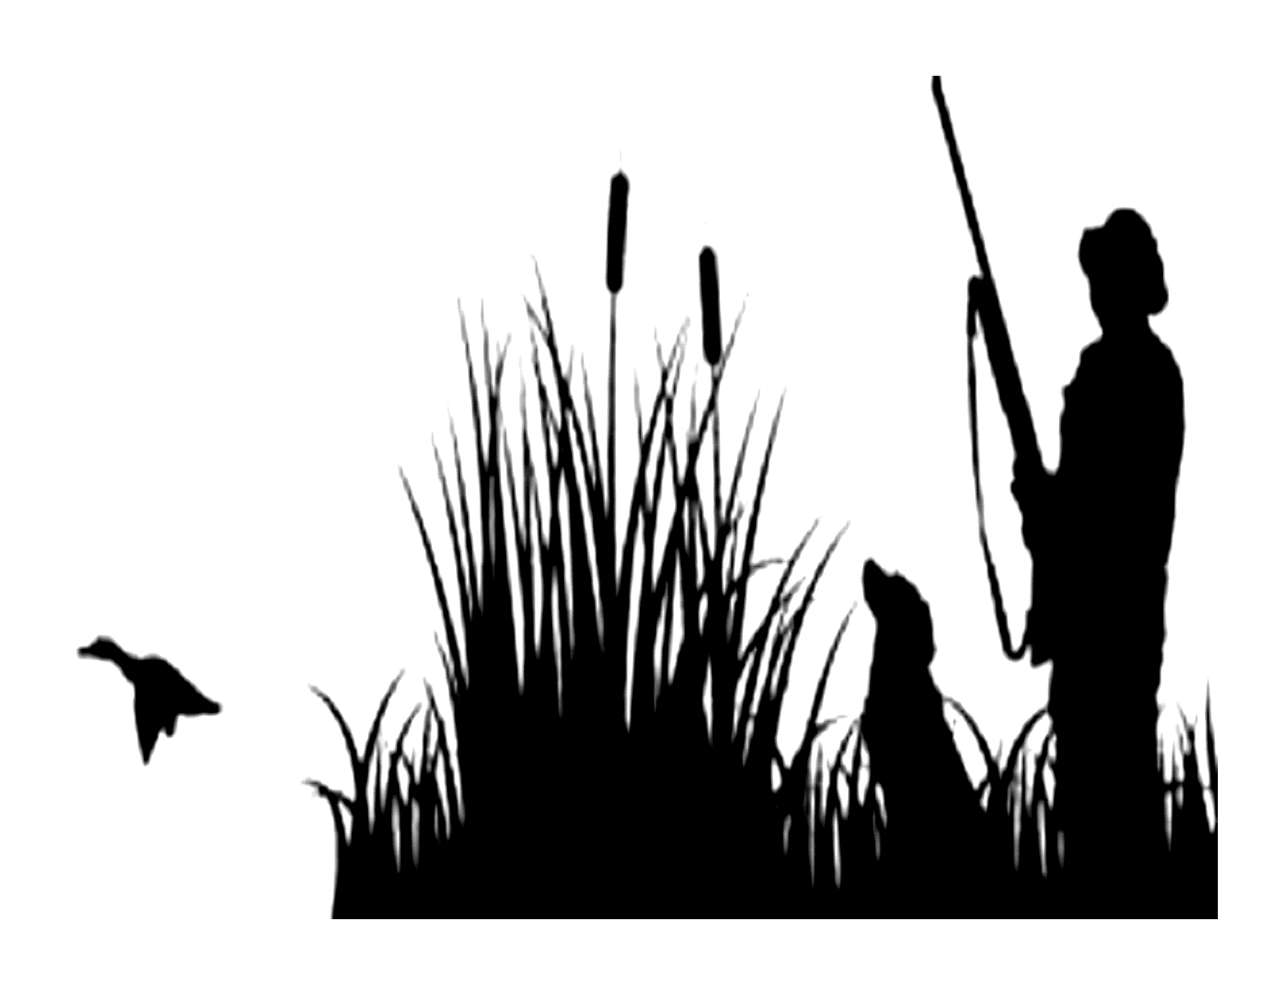 Duck Hunting Silhouette Edible Icing IMage for 1 4 SHeet cake by